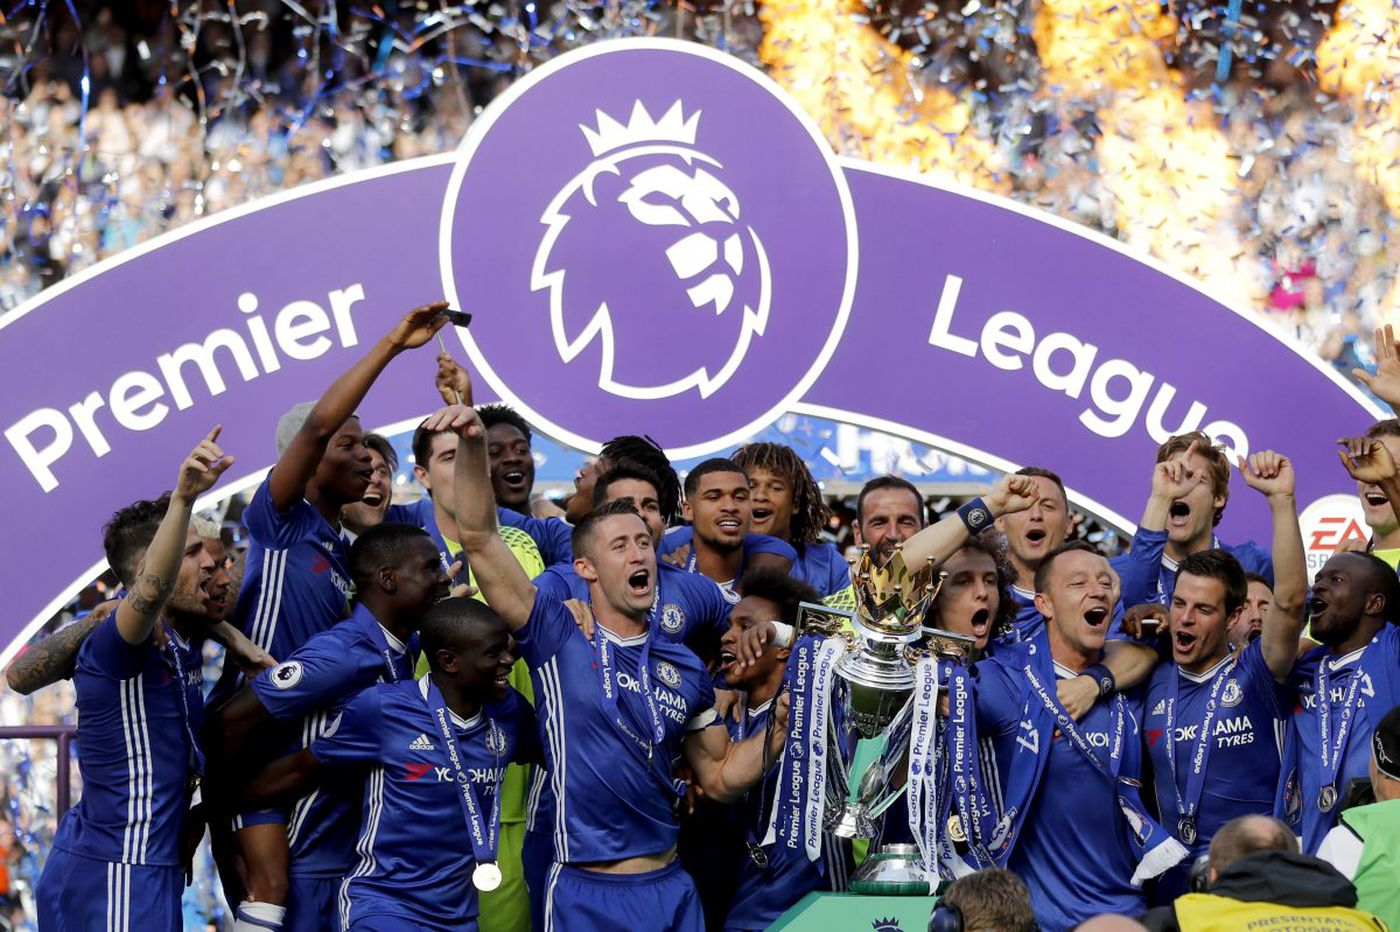 NBC to launch paid subscription English Premier League soccer streaming service